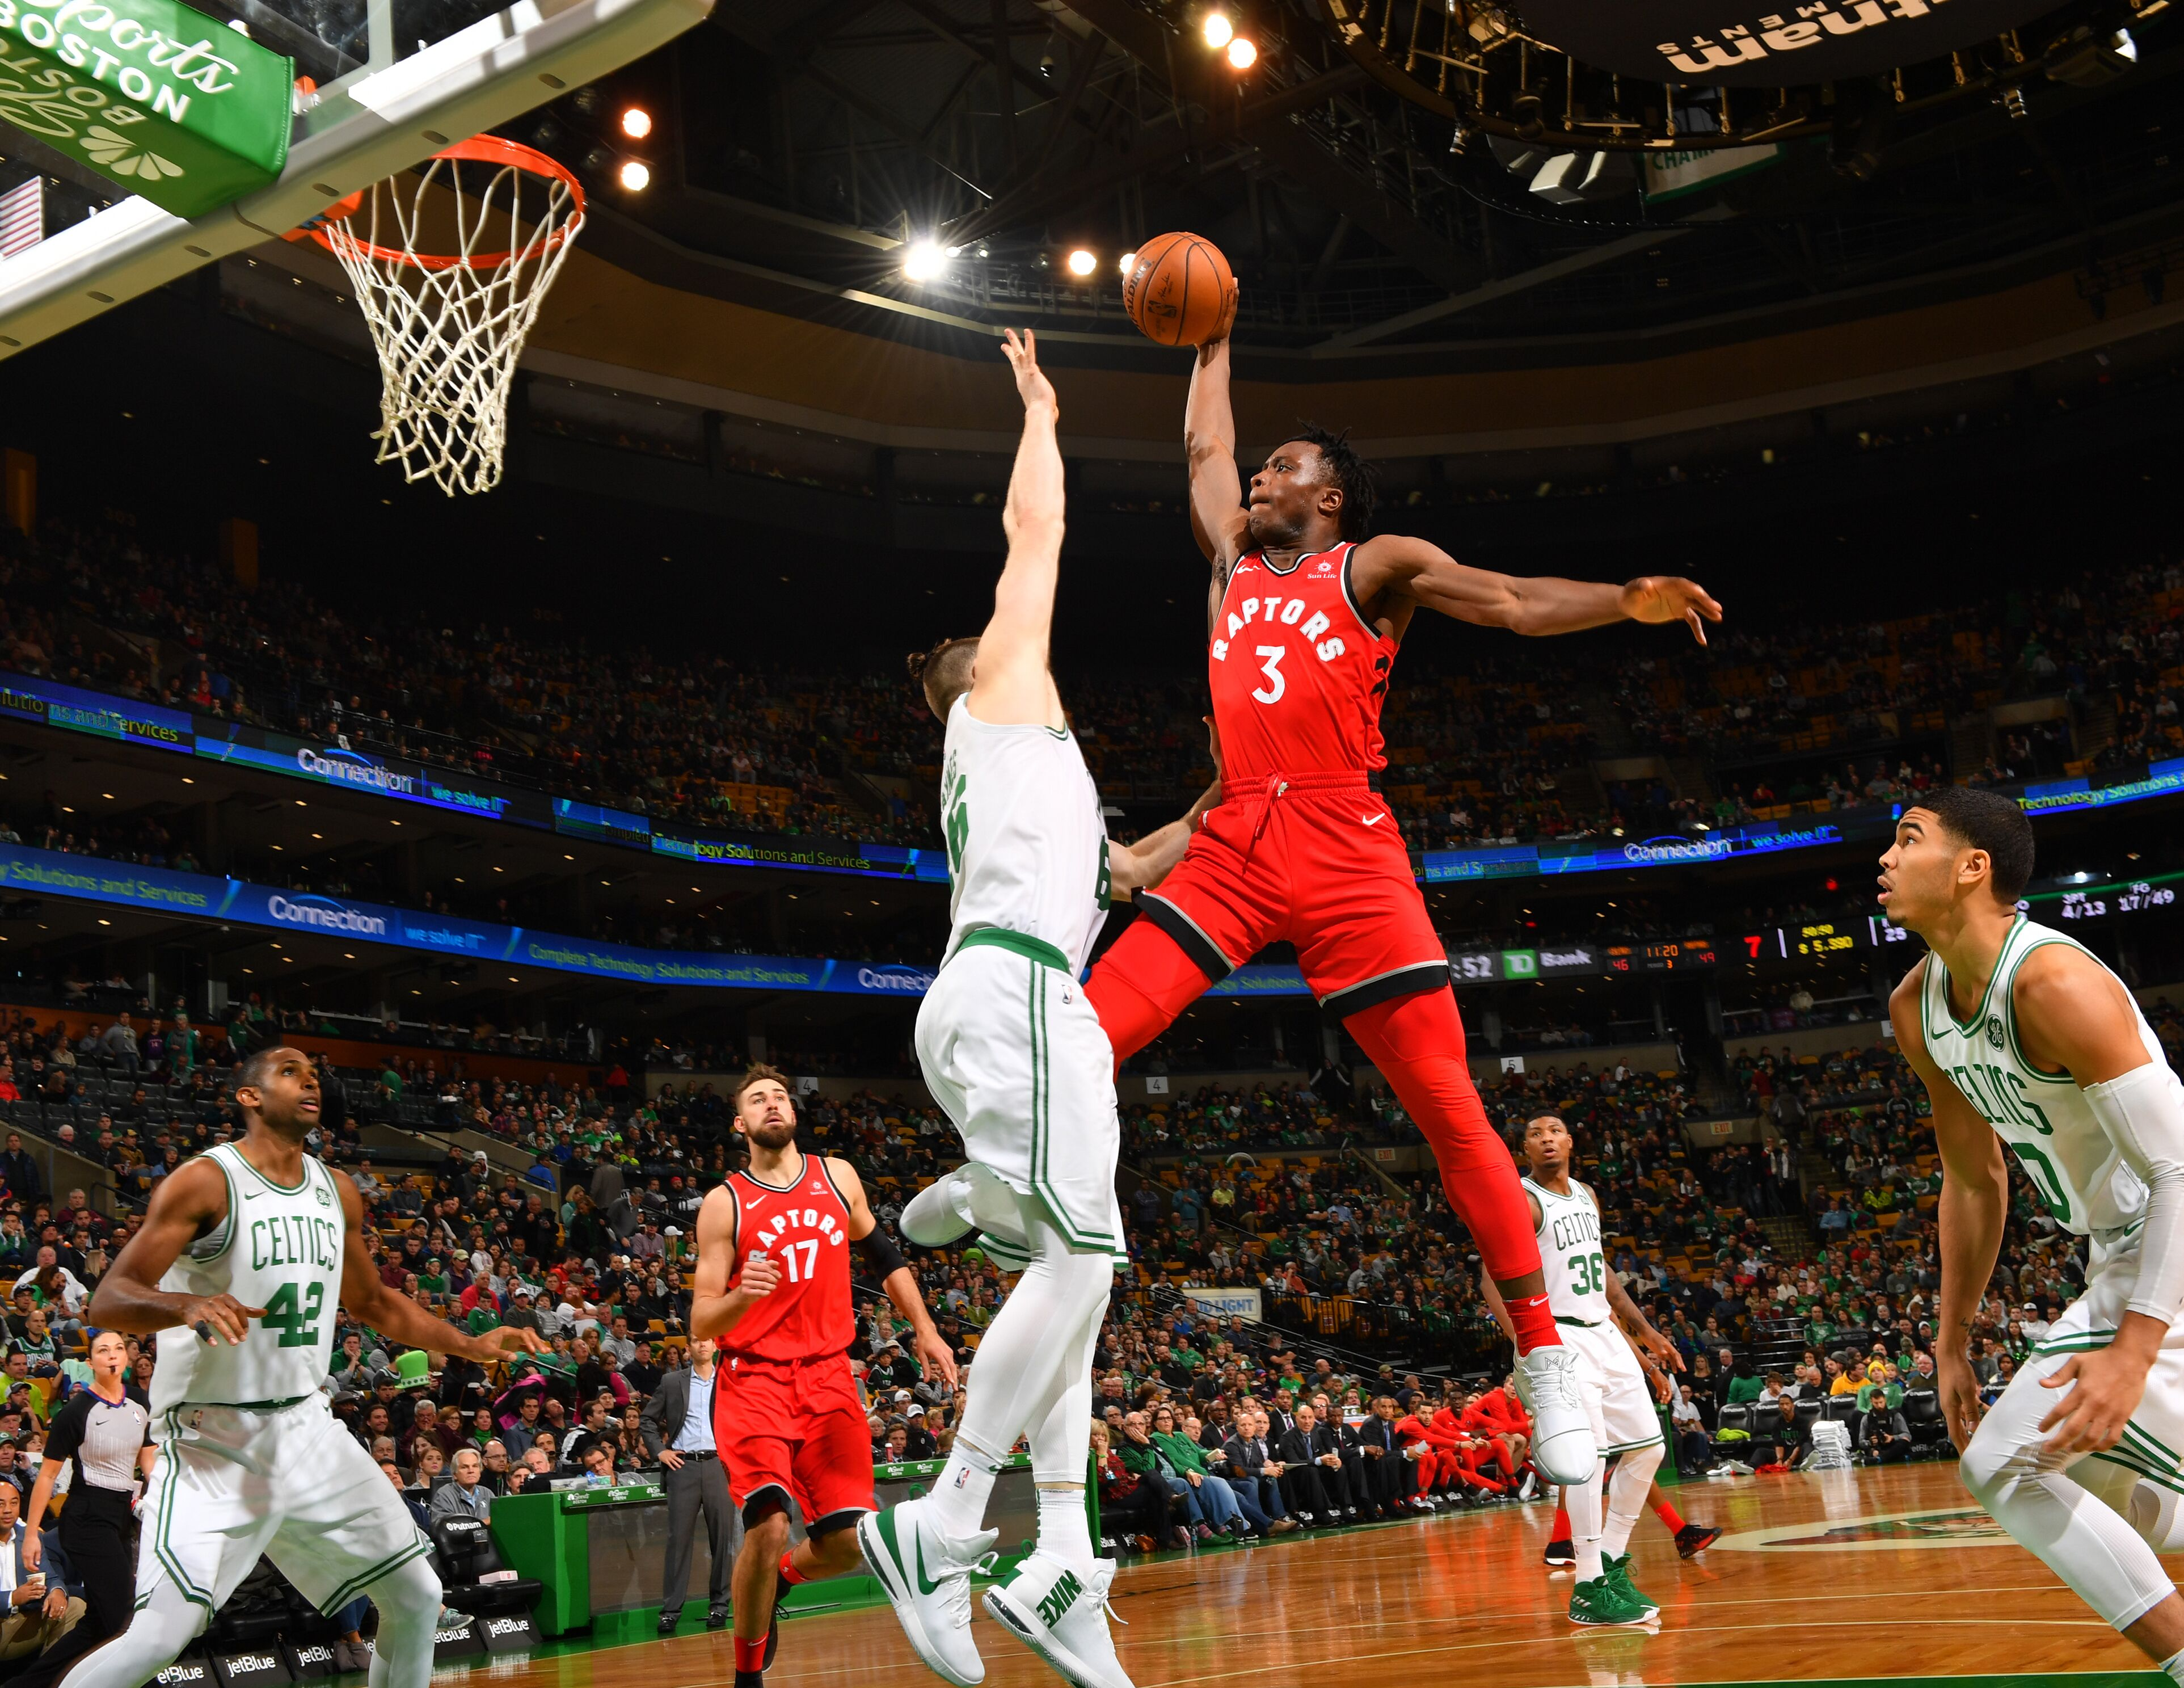 873356456-boston-celtics-v-toronto-raptors.jpg